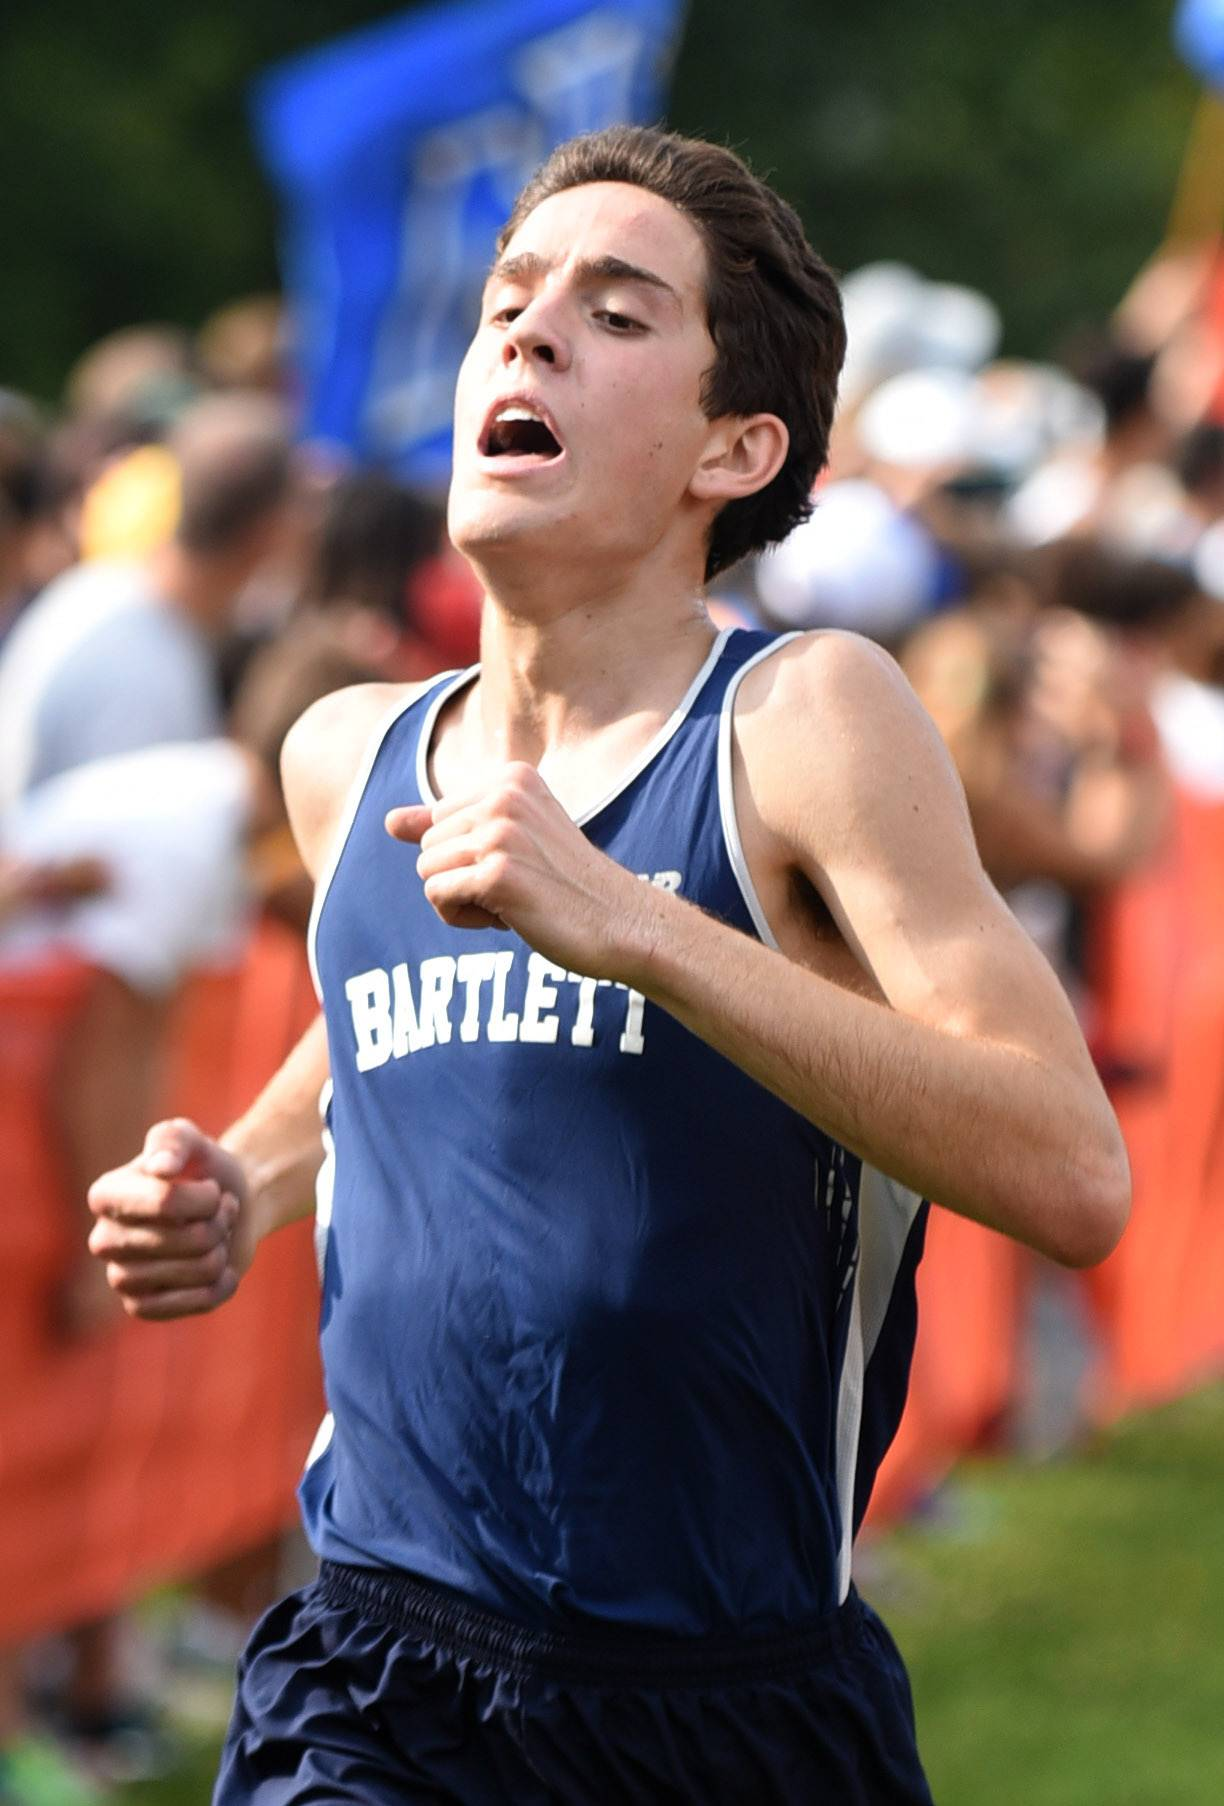 Laura Stoecker/lstoecker@dailyherald.comBartlett's Justin Isla nears the finish line in the boys varsity run in the St. Charles East Leavey Invitational at LeRoy Oakes Forest Preserve in St. Charles Saturday.